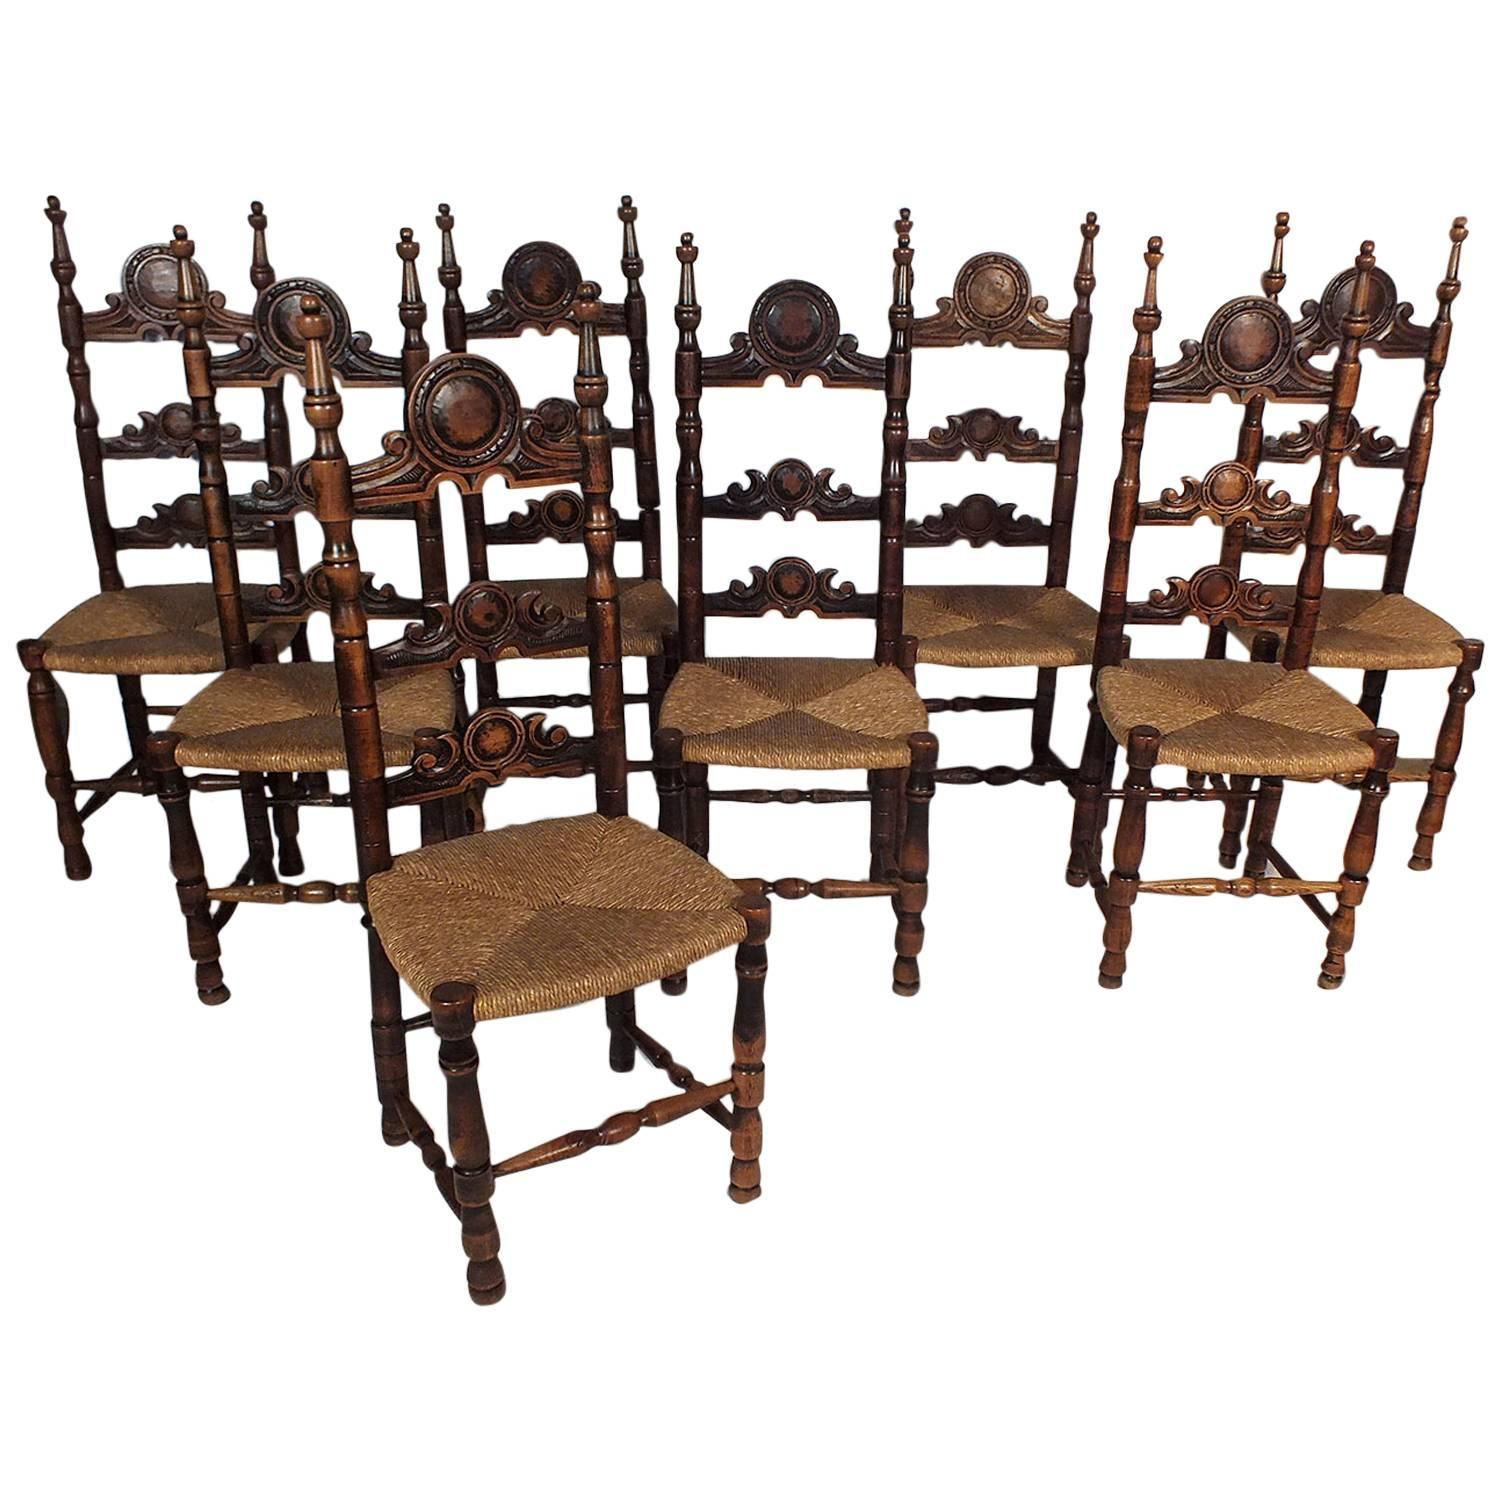 Set of 8 french walnut wood rush seat dining chairs at 1stdibs